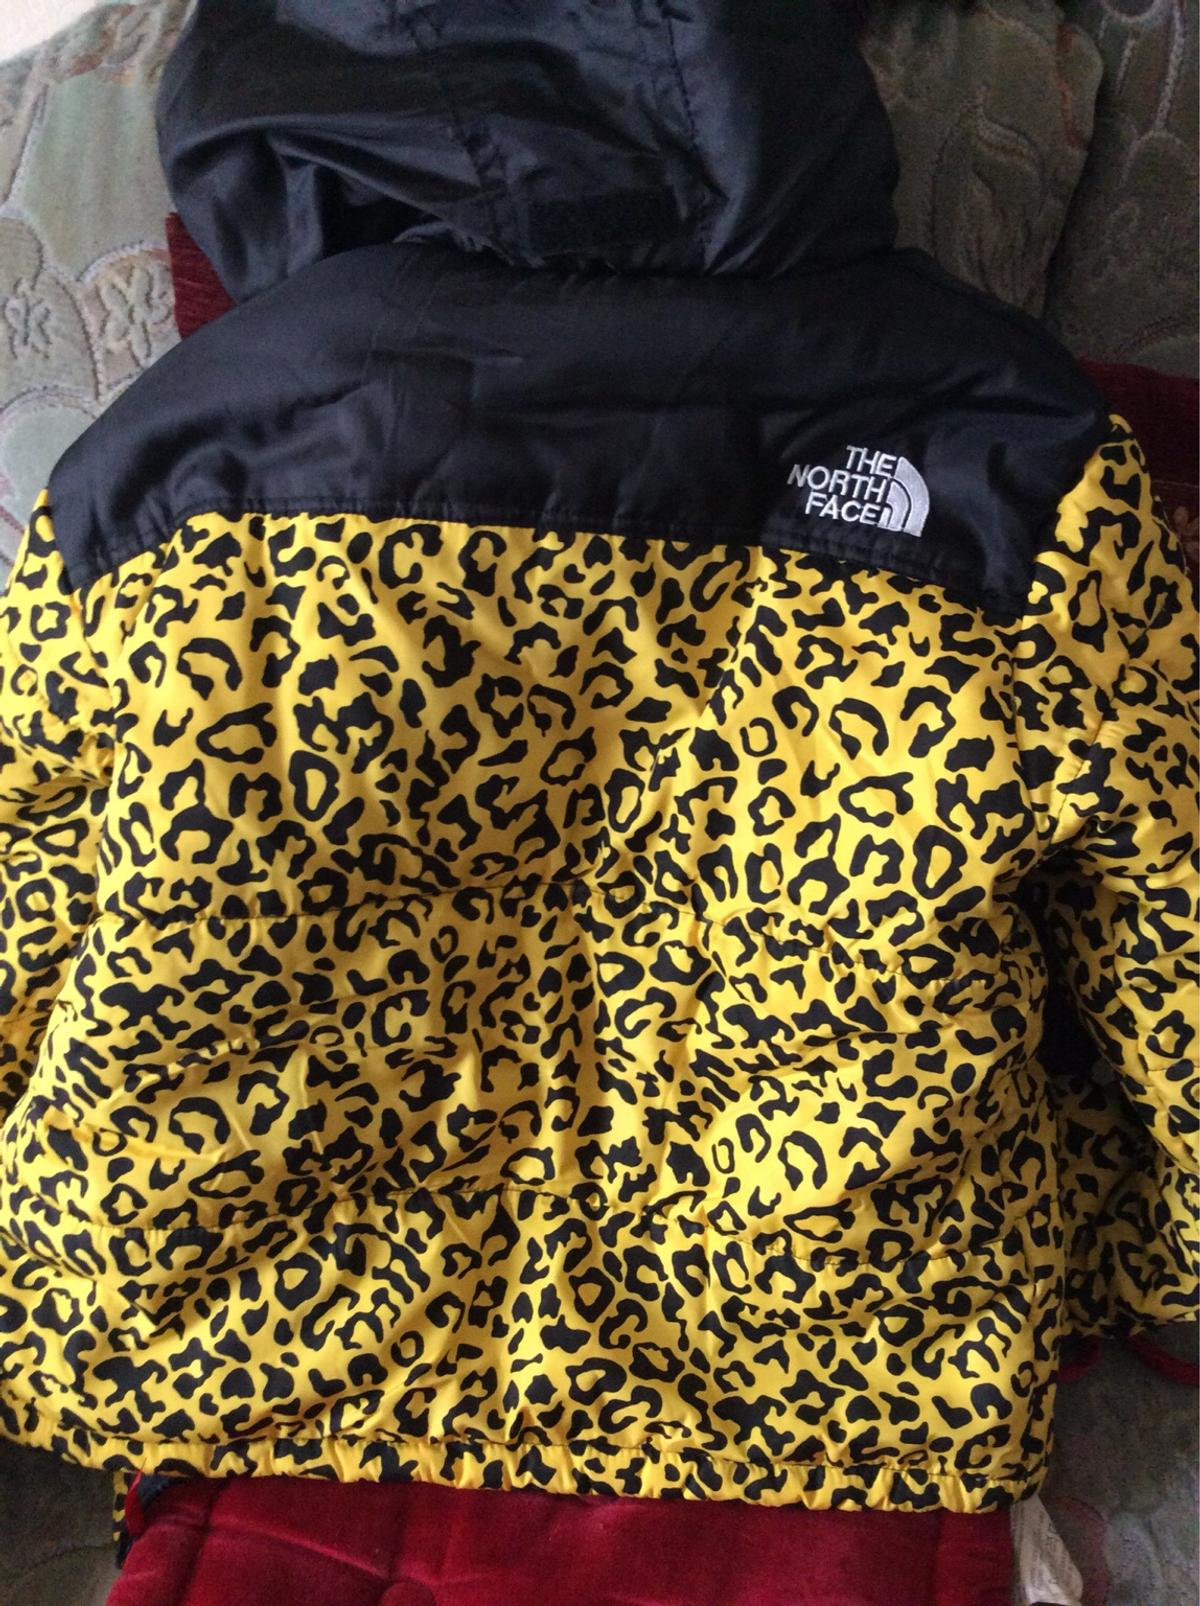 The North Face Supreme Leopard Print Jacket In LL55 Caernarfon For